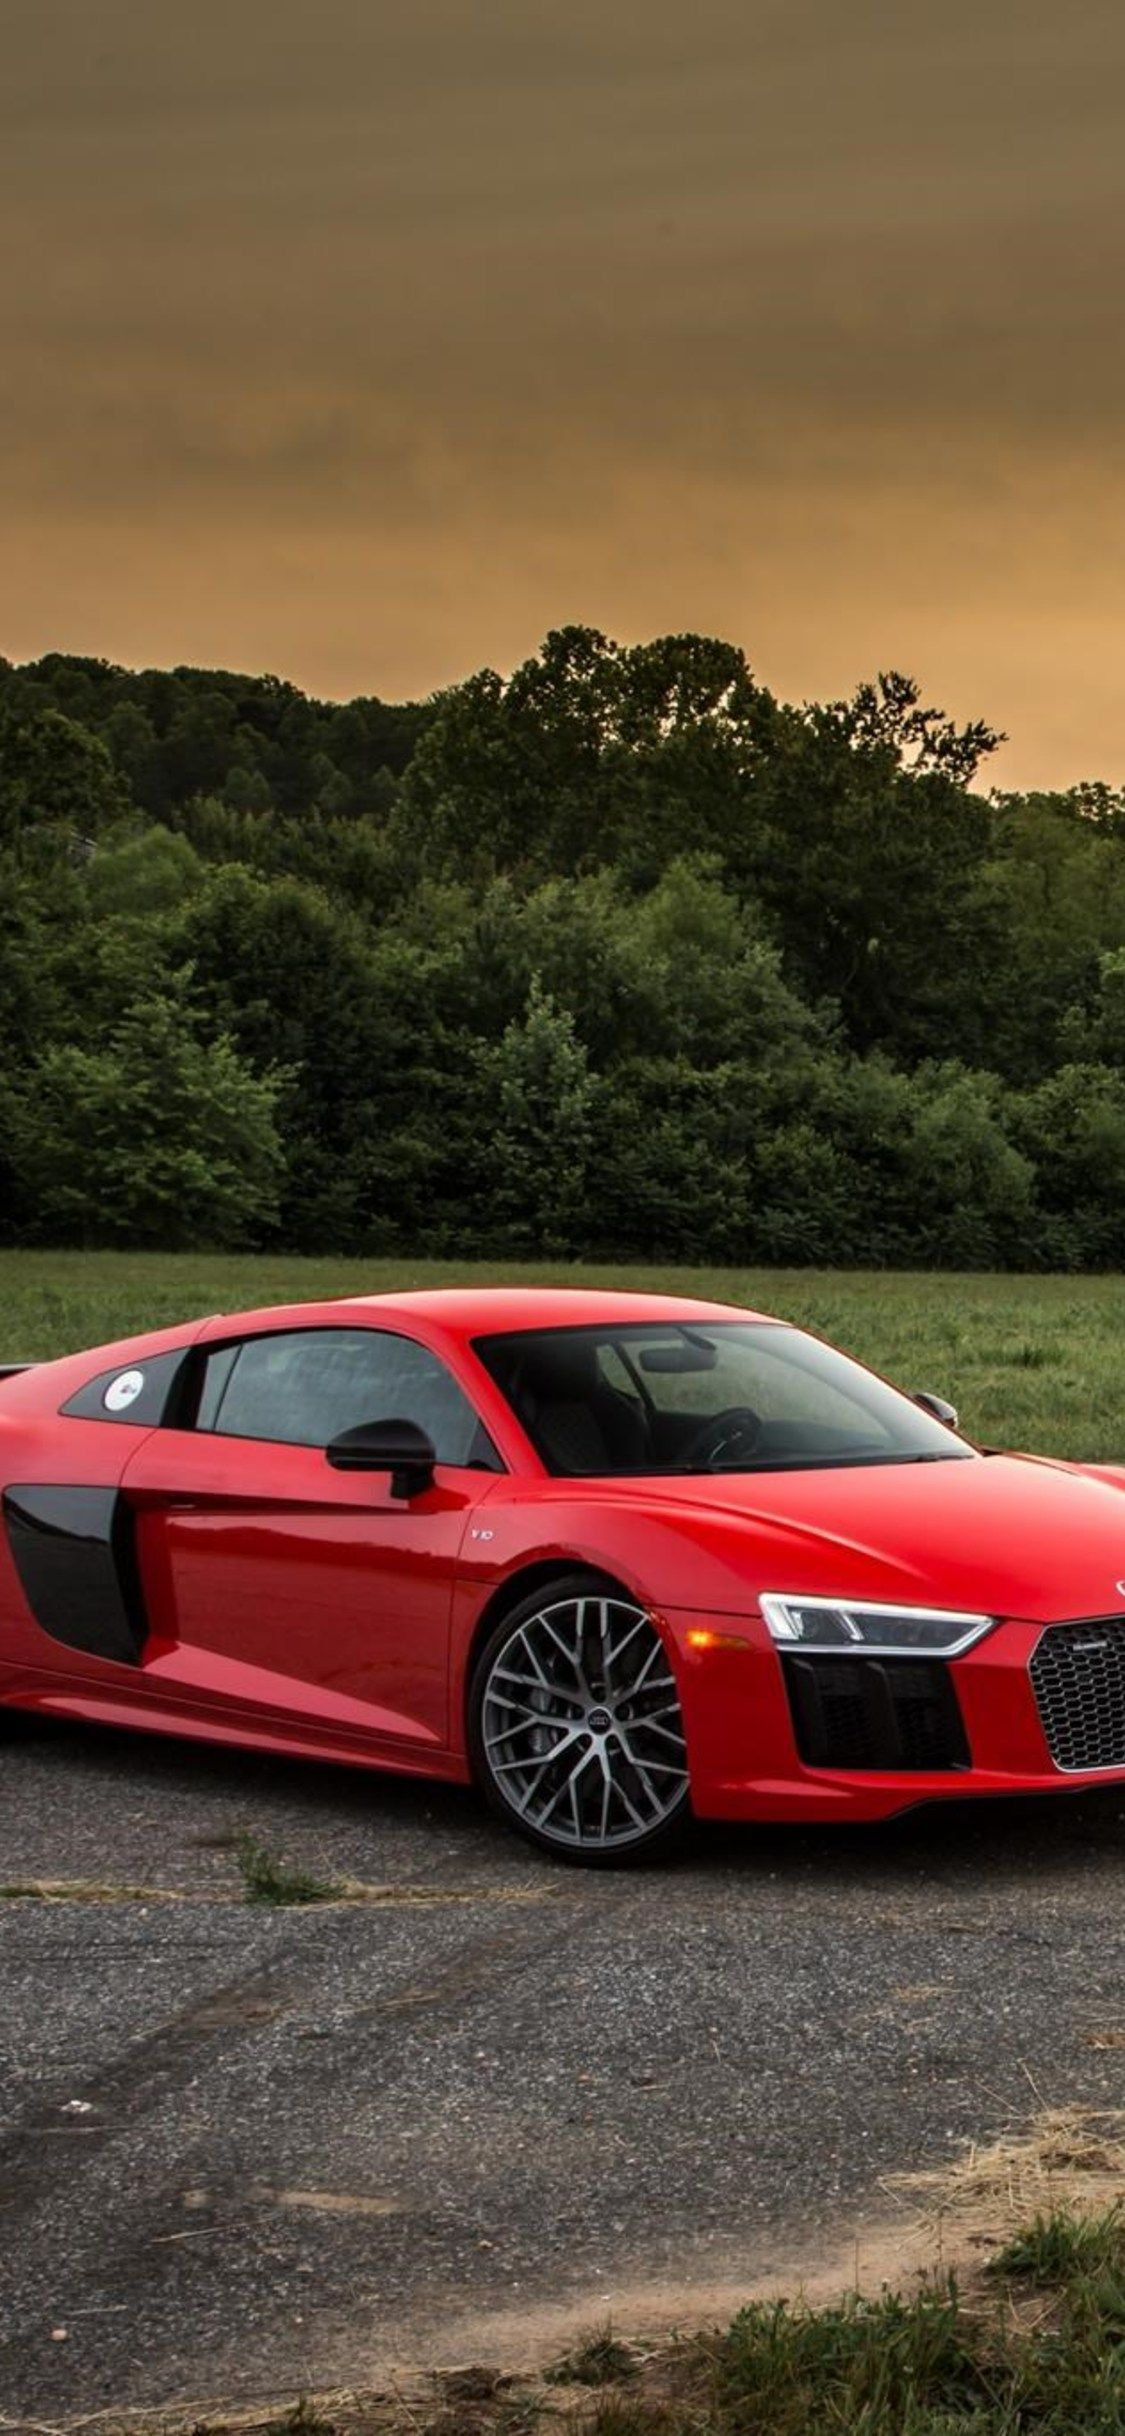 Audi R8 Iphone Wallpapers Top Free Audi R8 Iphone Backgrounds